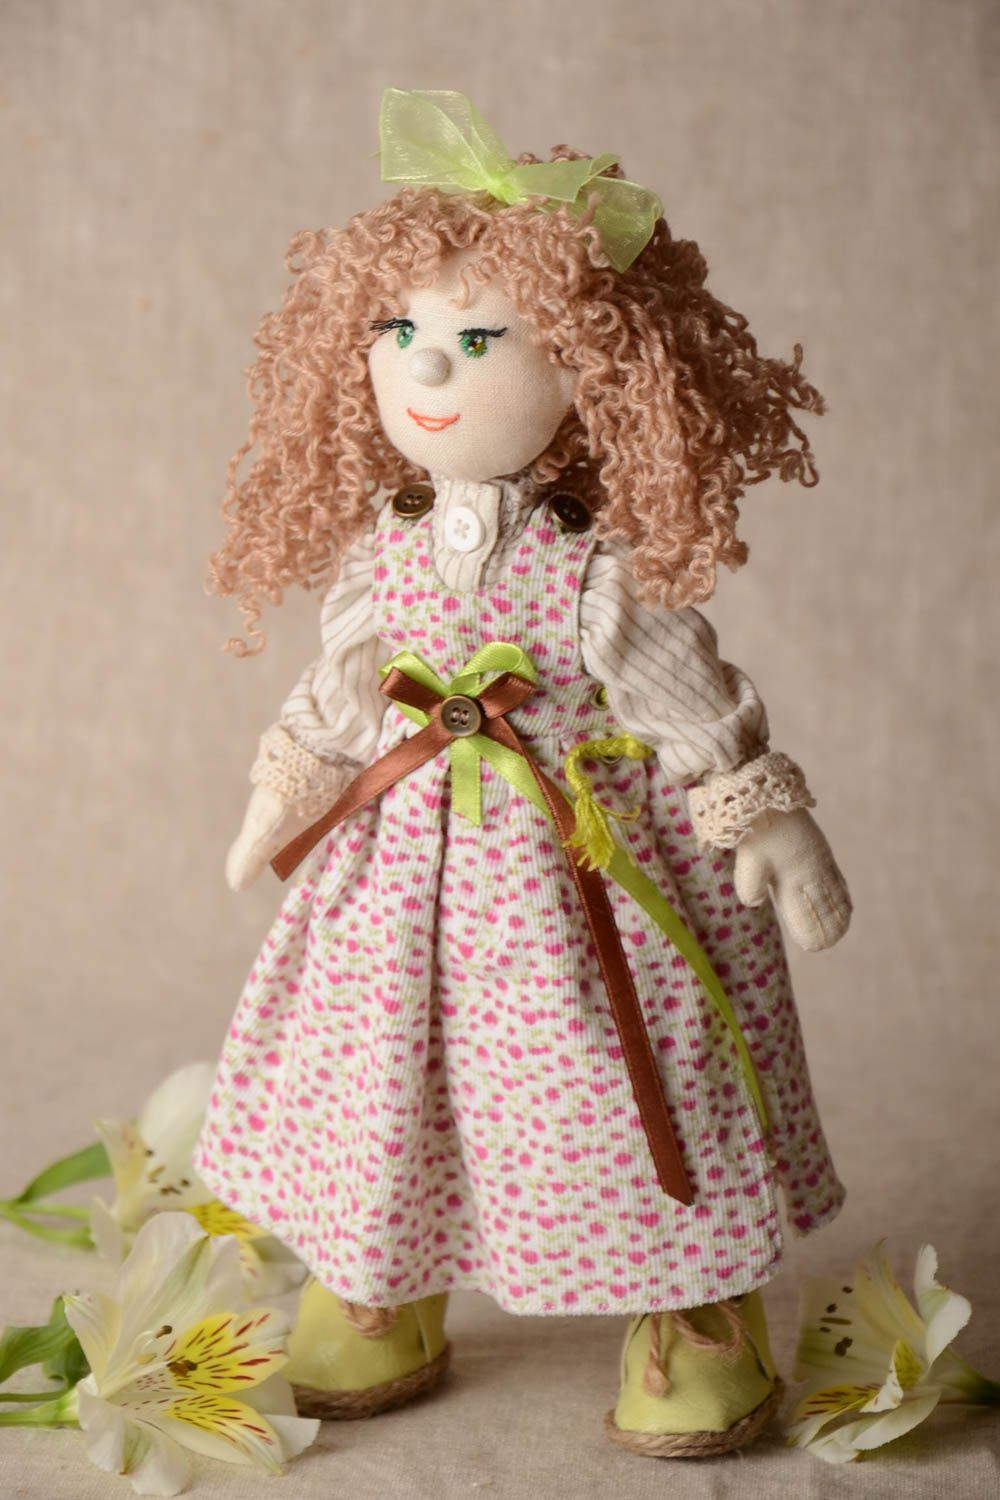 Designer fabric doll made of natural materials with movable limbs home decor photo 1